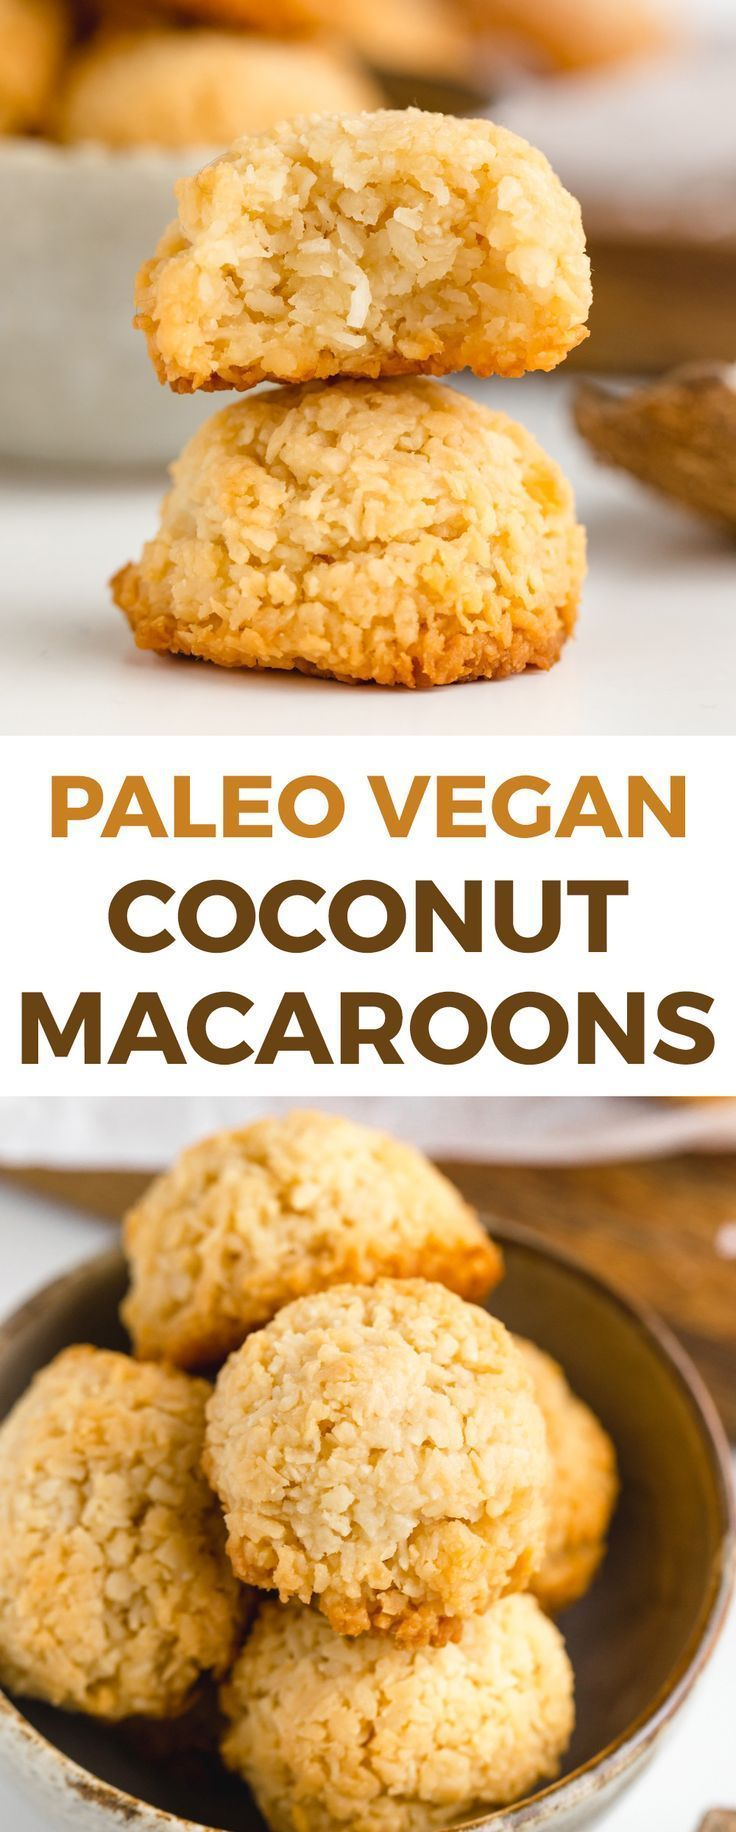 Paleo coconut macaroons that are chewy on the inside and crisp on the outside! They taste like regular macaroons but are vegan and maple-sweetened. coconut macaroons that are chewy on the inside and crisp on the outside! They taste like regular macaroons but are vegan and maple-sweetened.